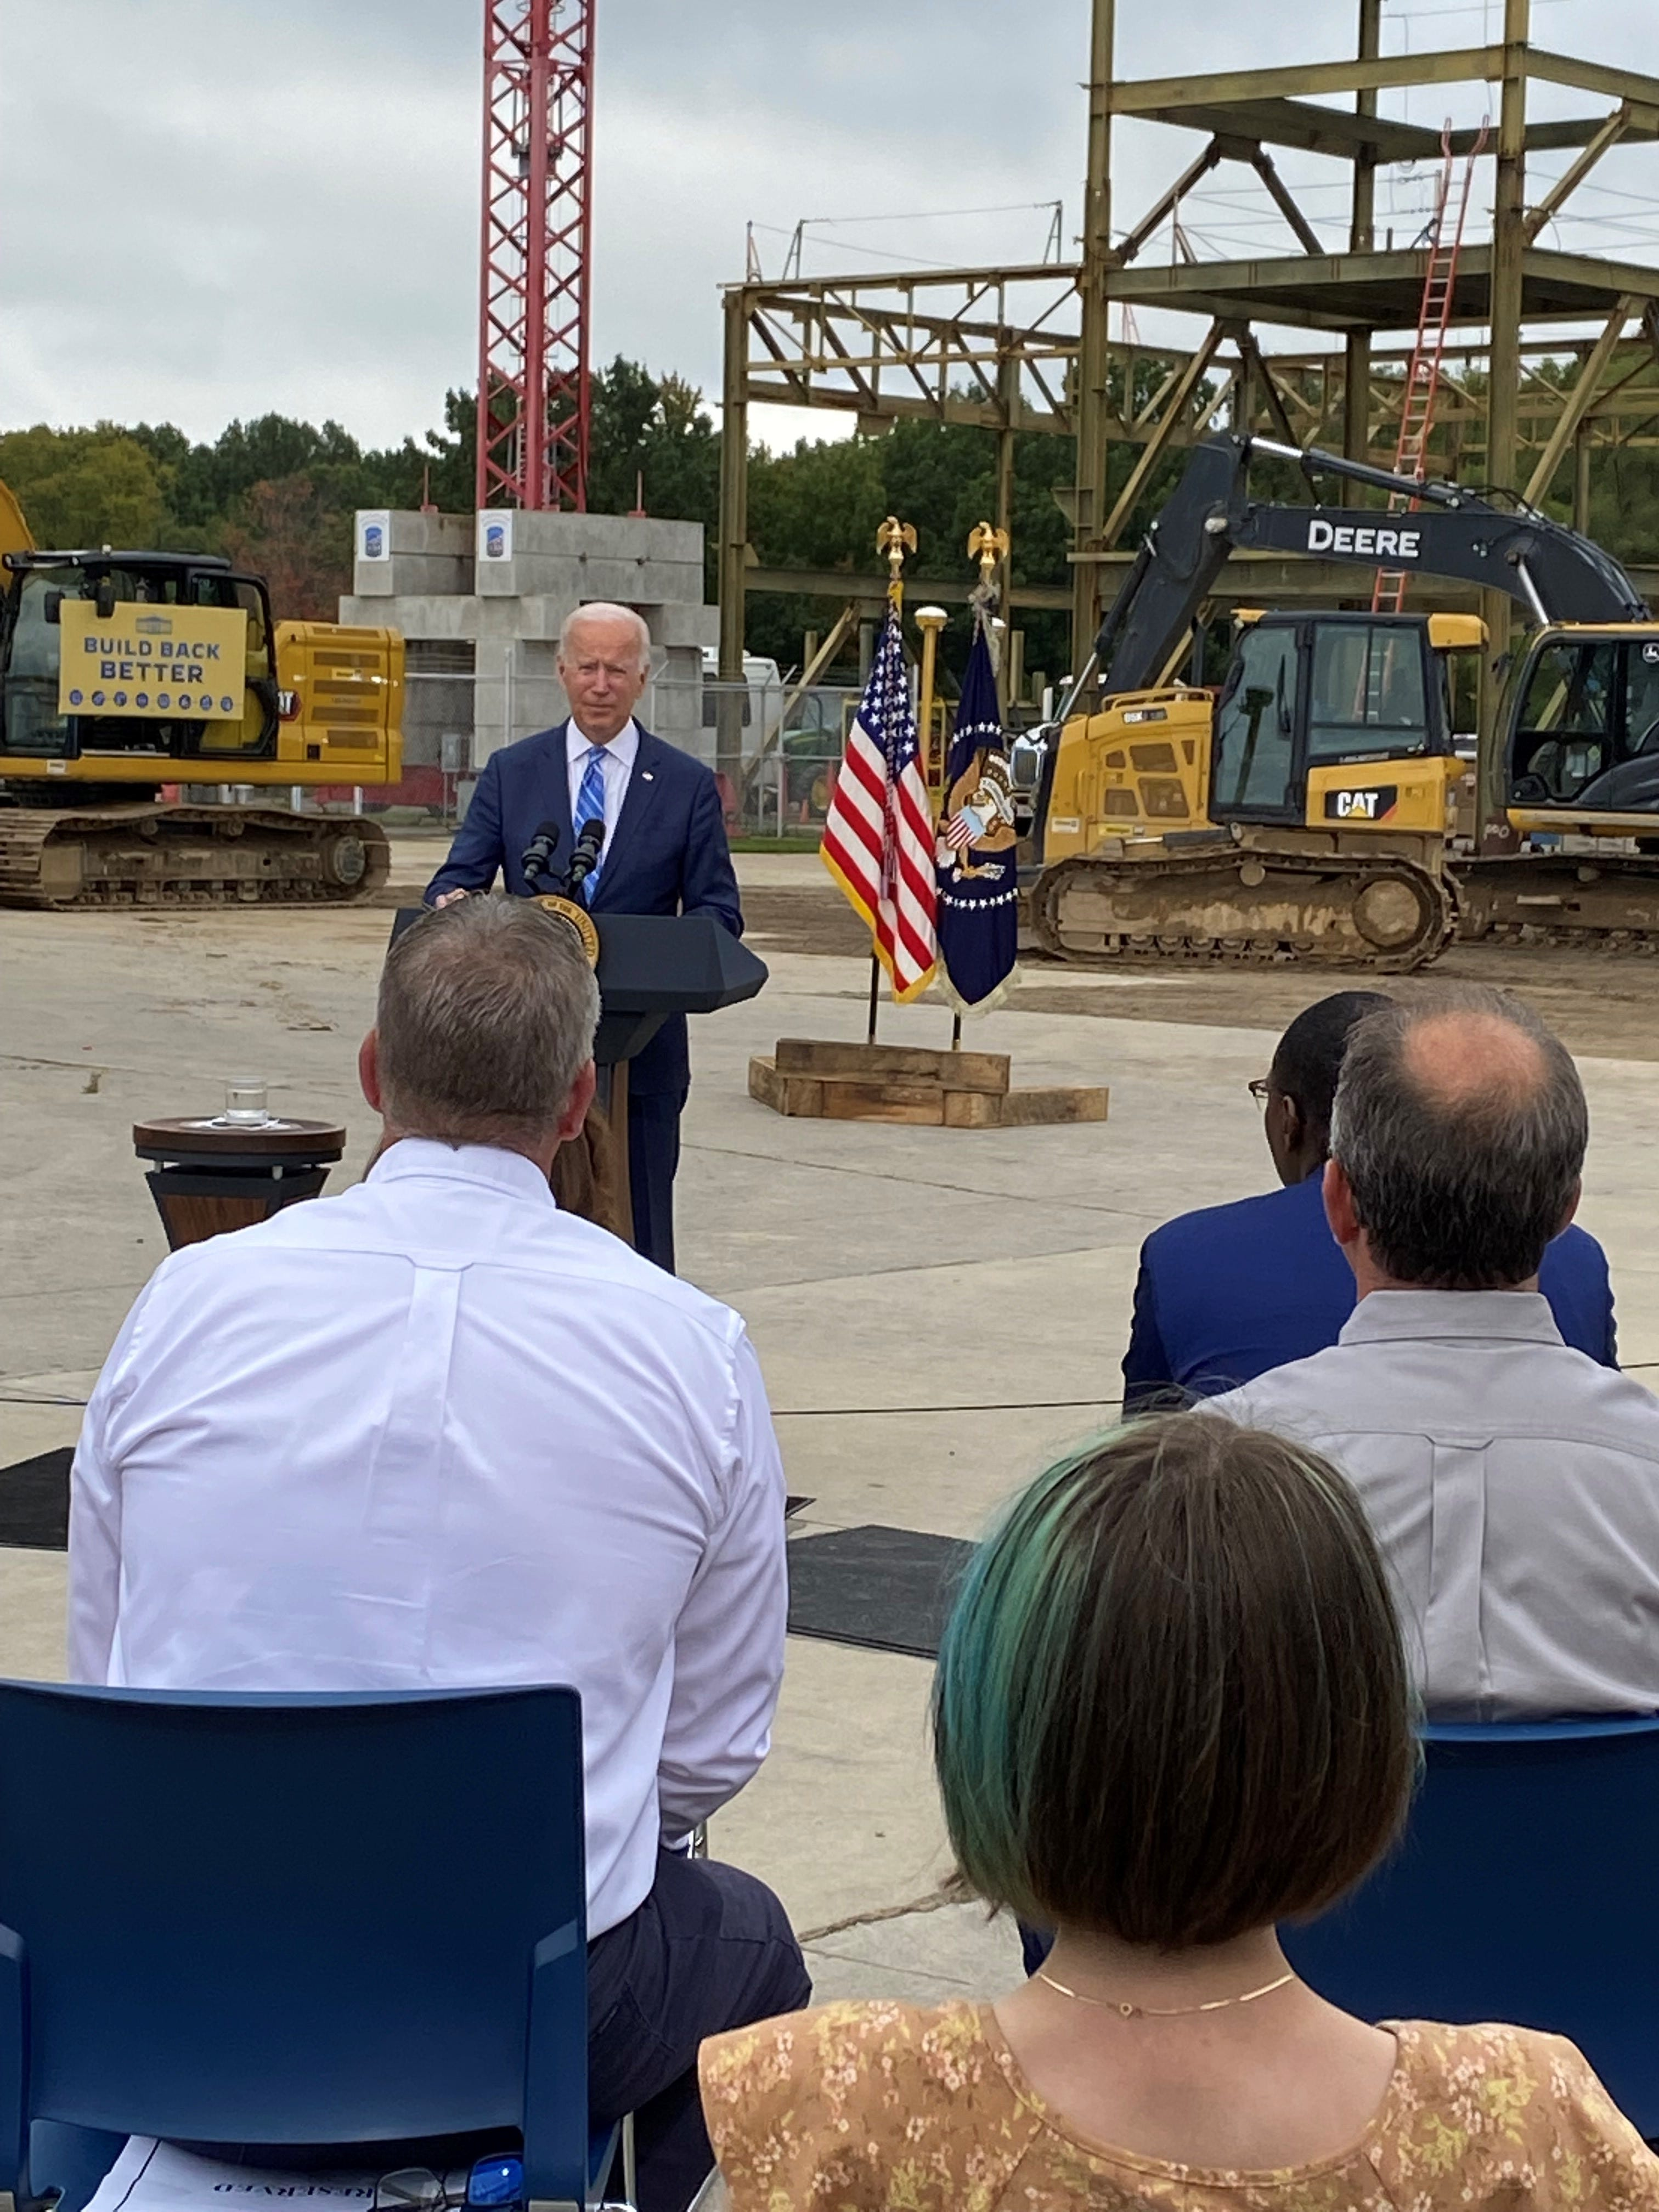 Biden in Michigan: U.S. is 'falling behind' without new infrastructure, human investments